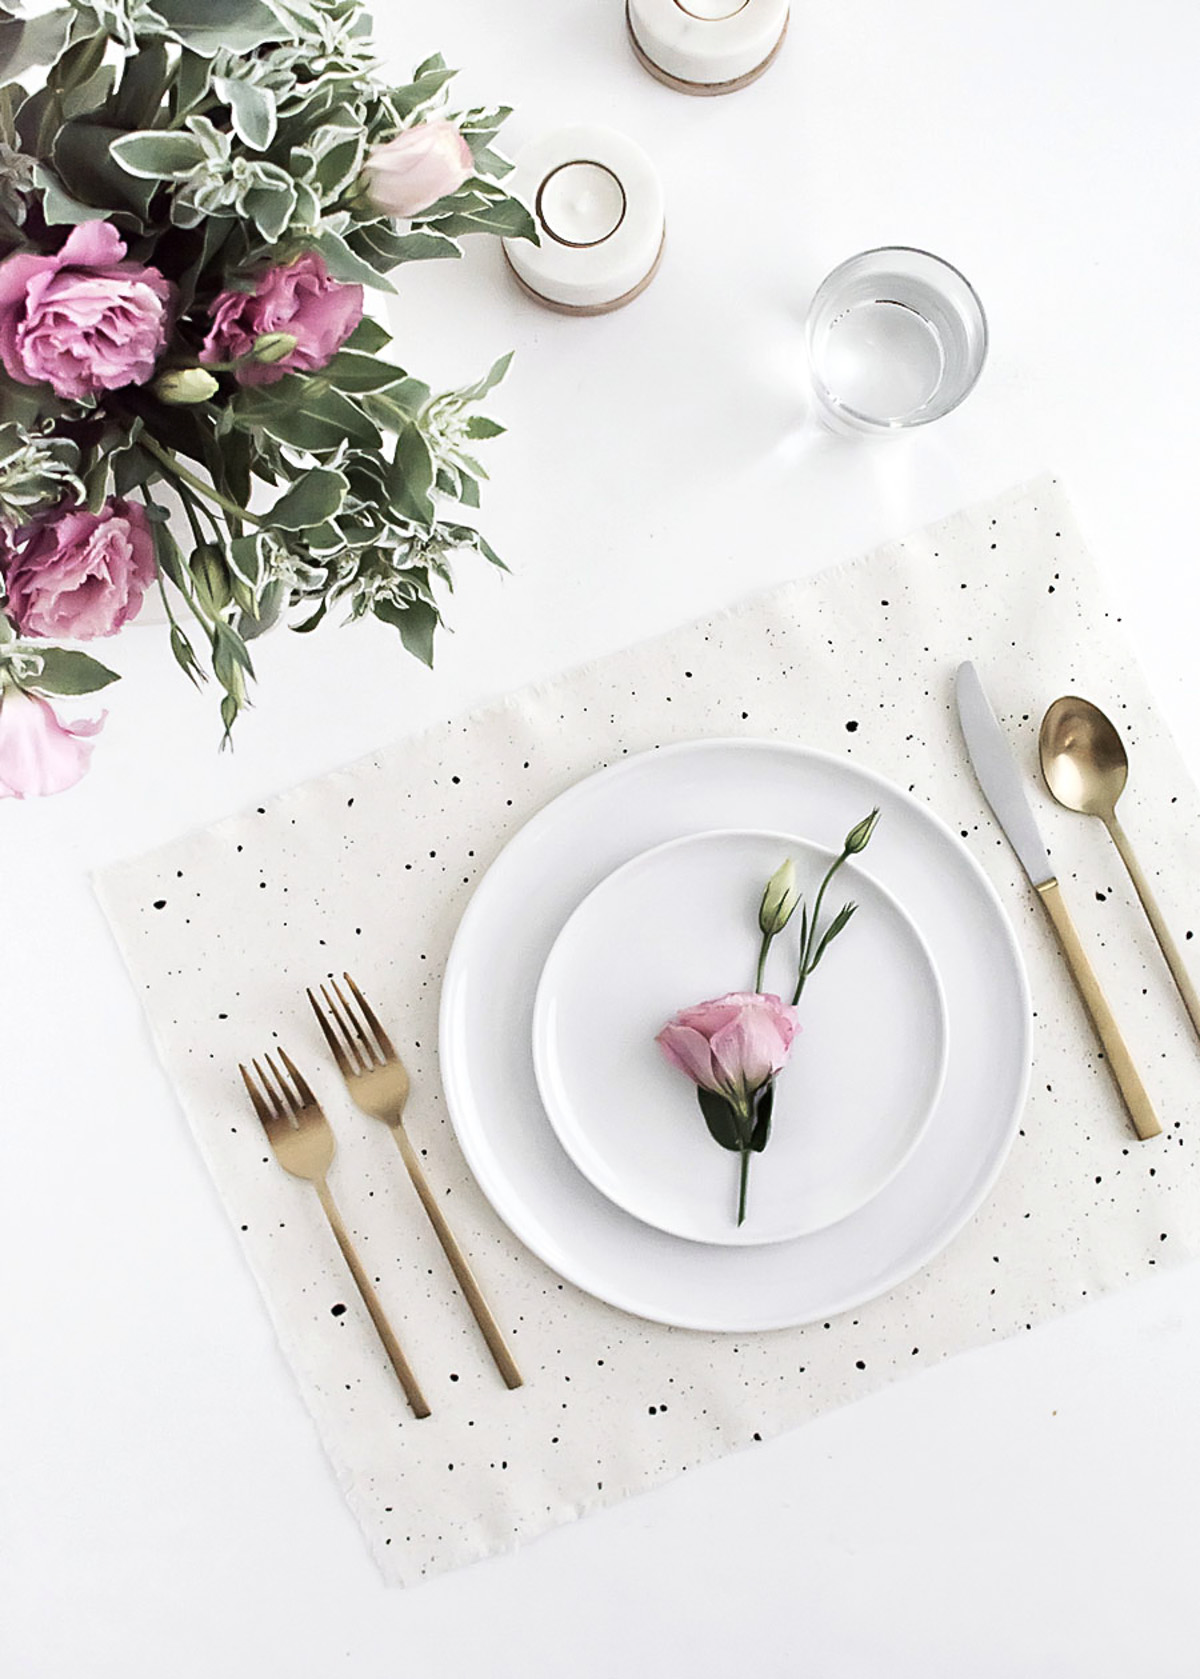 DIY Speckled Placemats by Homey oh My